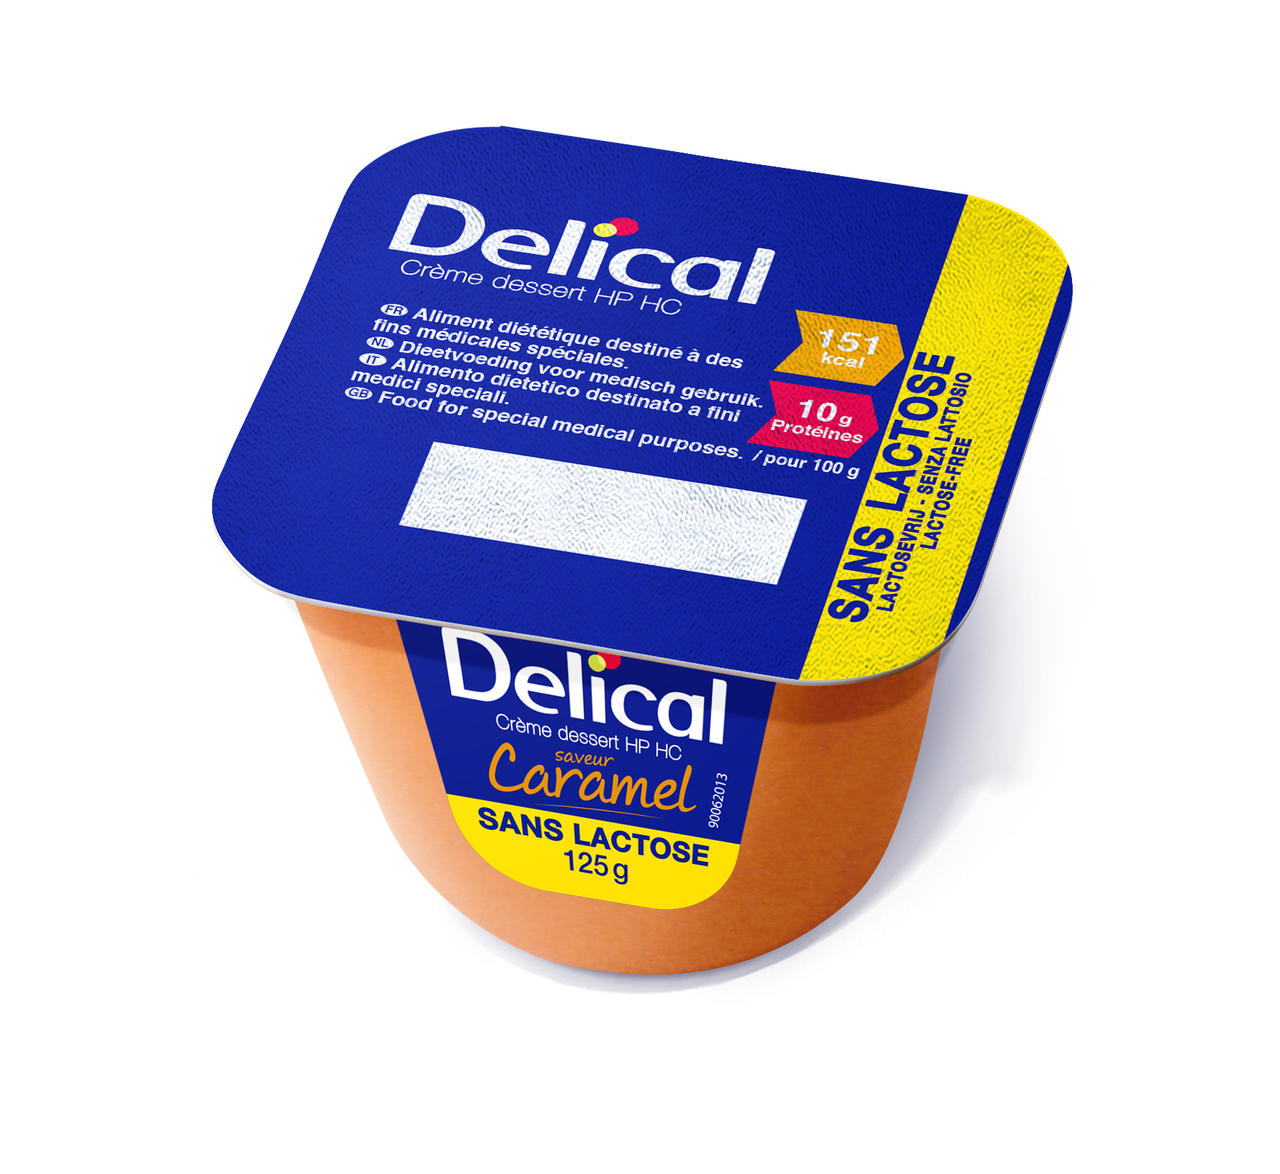 Delical Caramello 4 x 125g